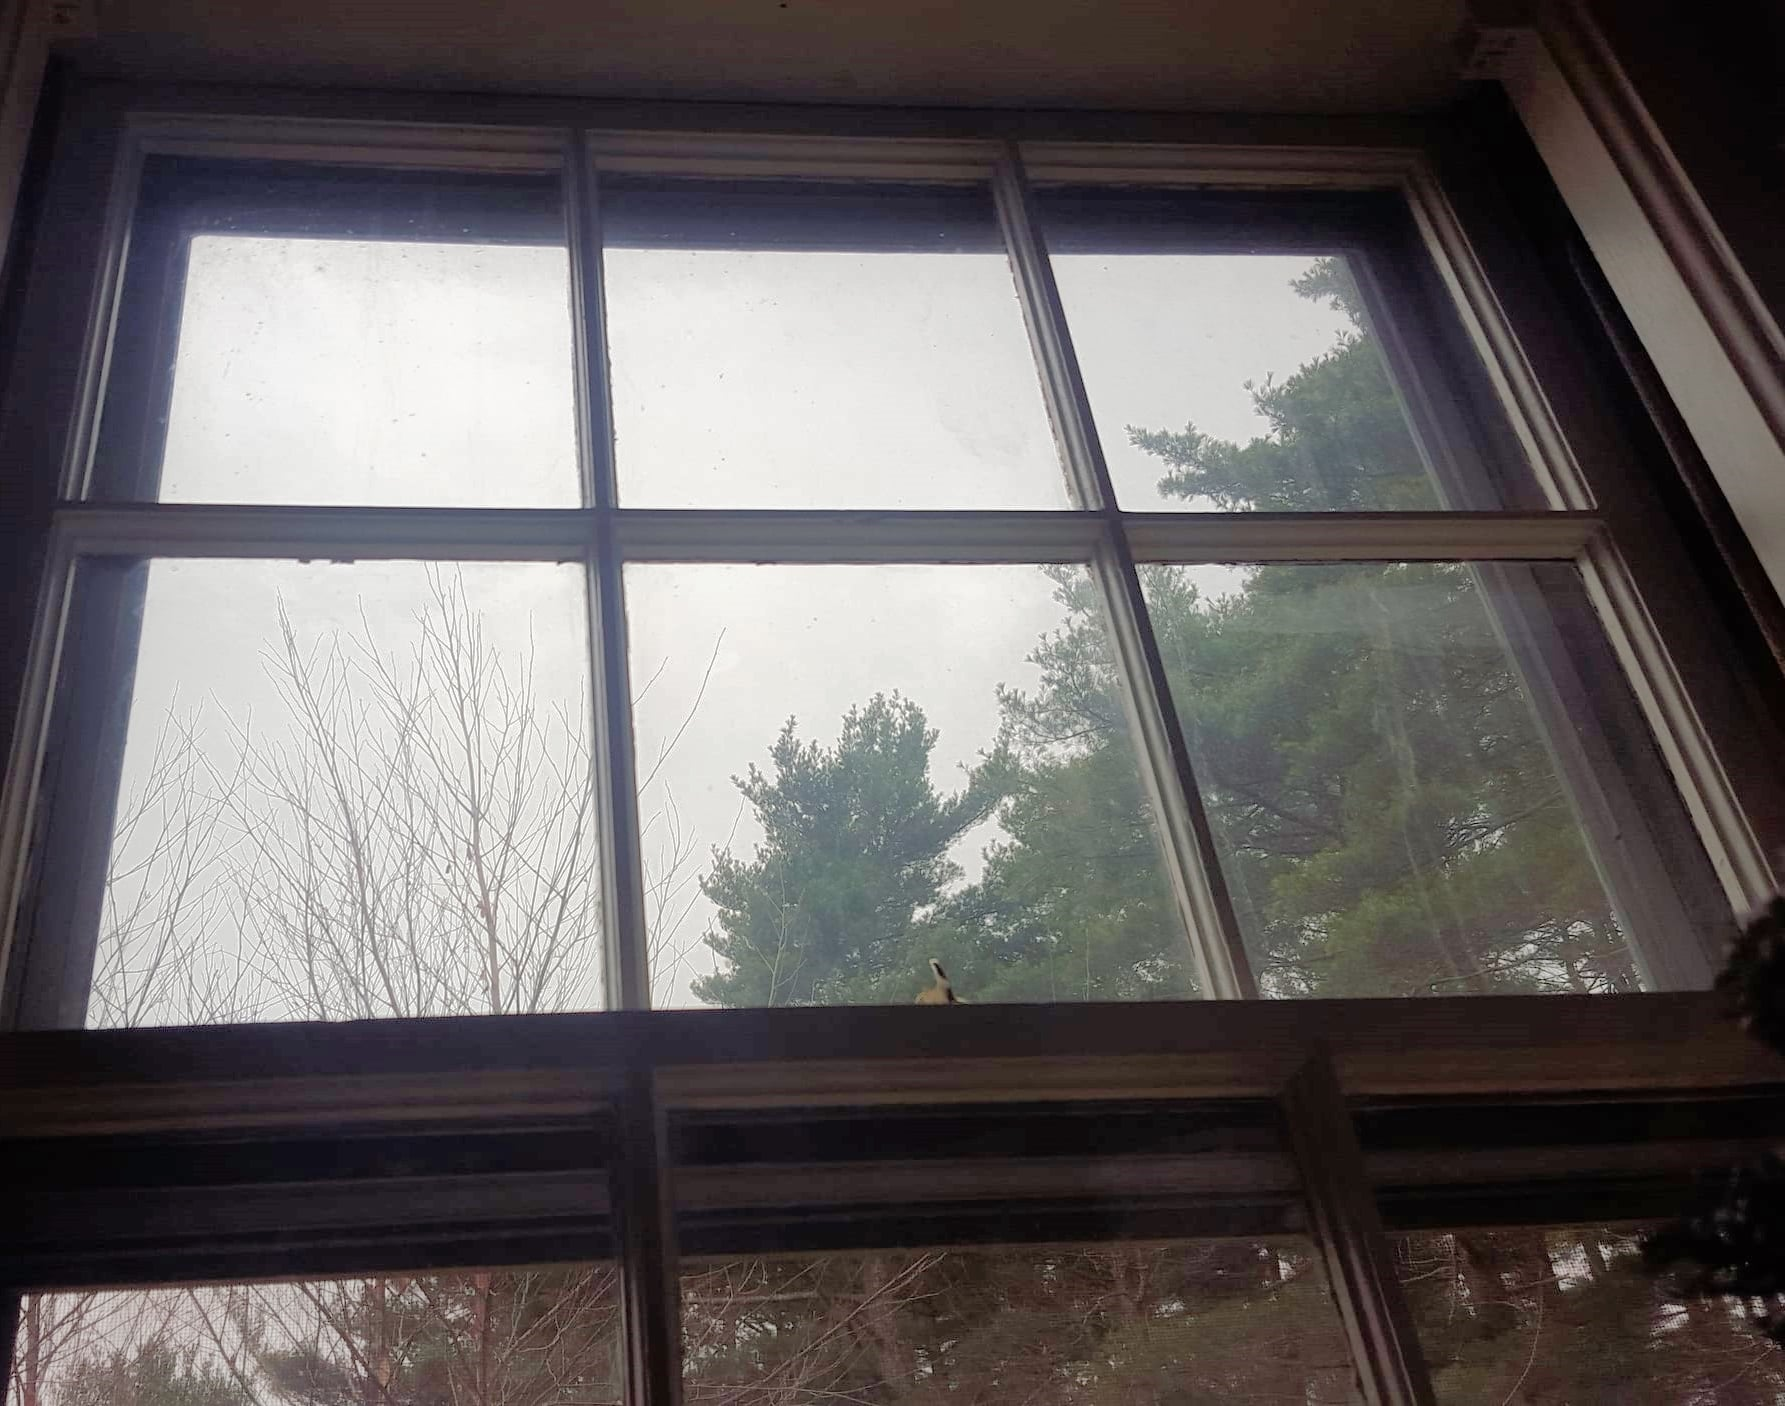 Have you latched the window shut and still wonder why you can feel cold air or notice a candle flicker?